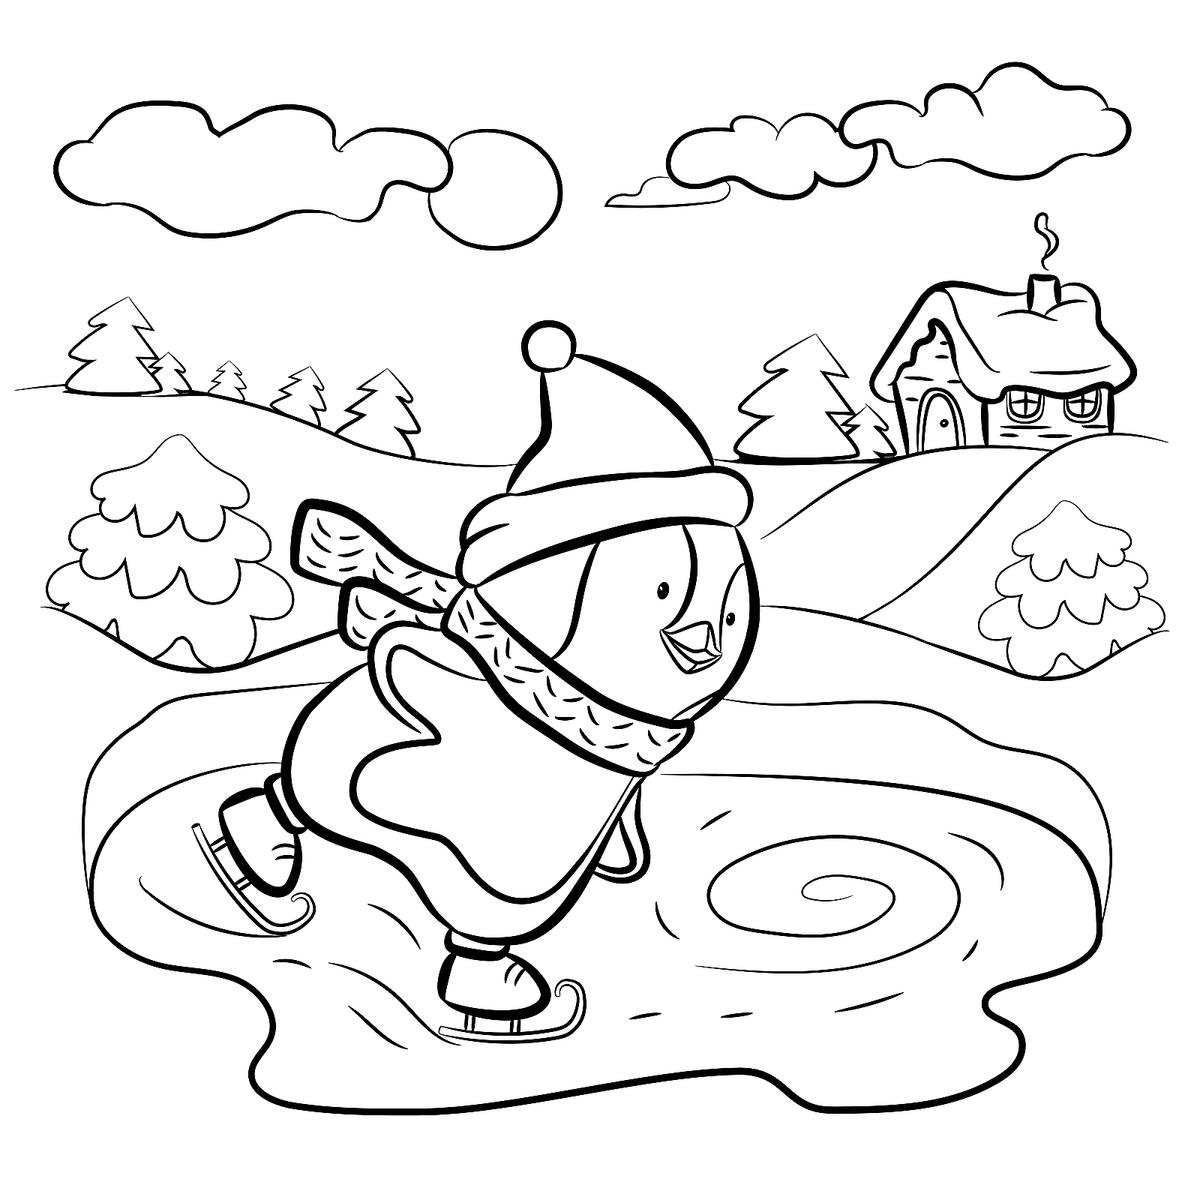 Winter Puzzle Coloring Pages Free Printable Winter Themed Activity Pages For Kids Printables 30seconds Mom